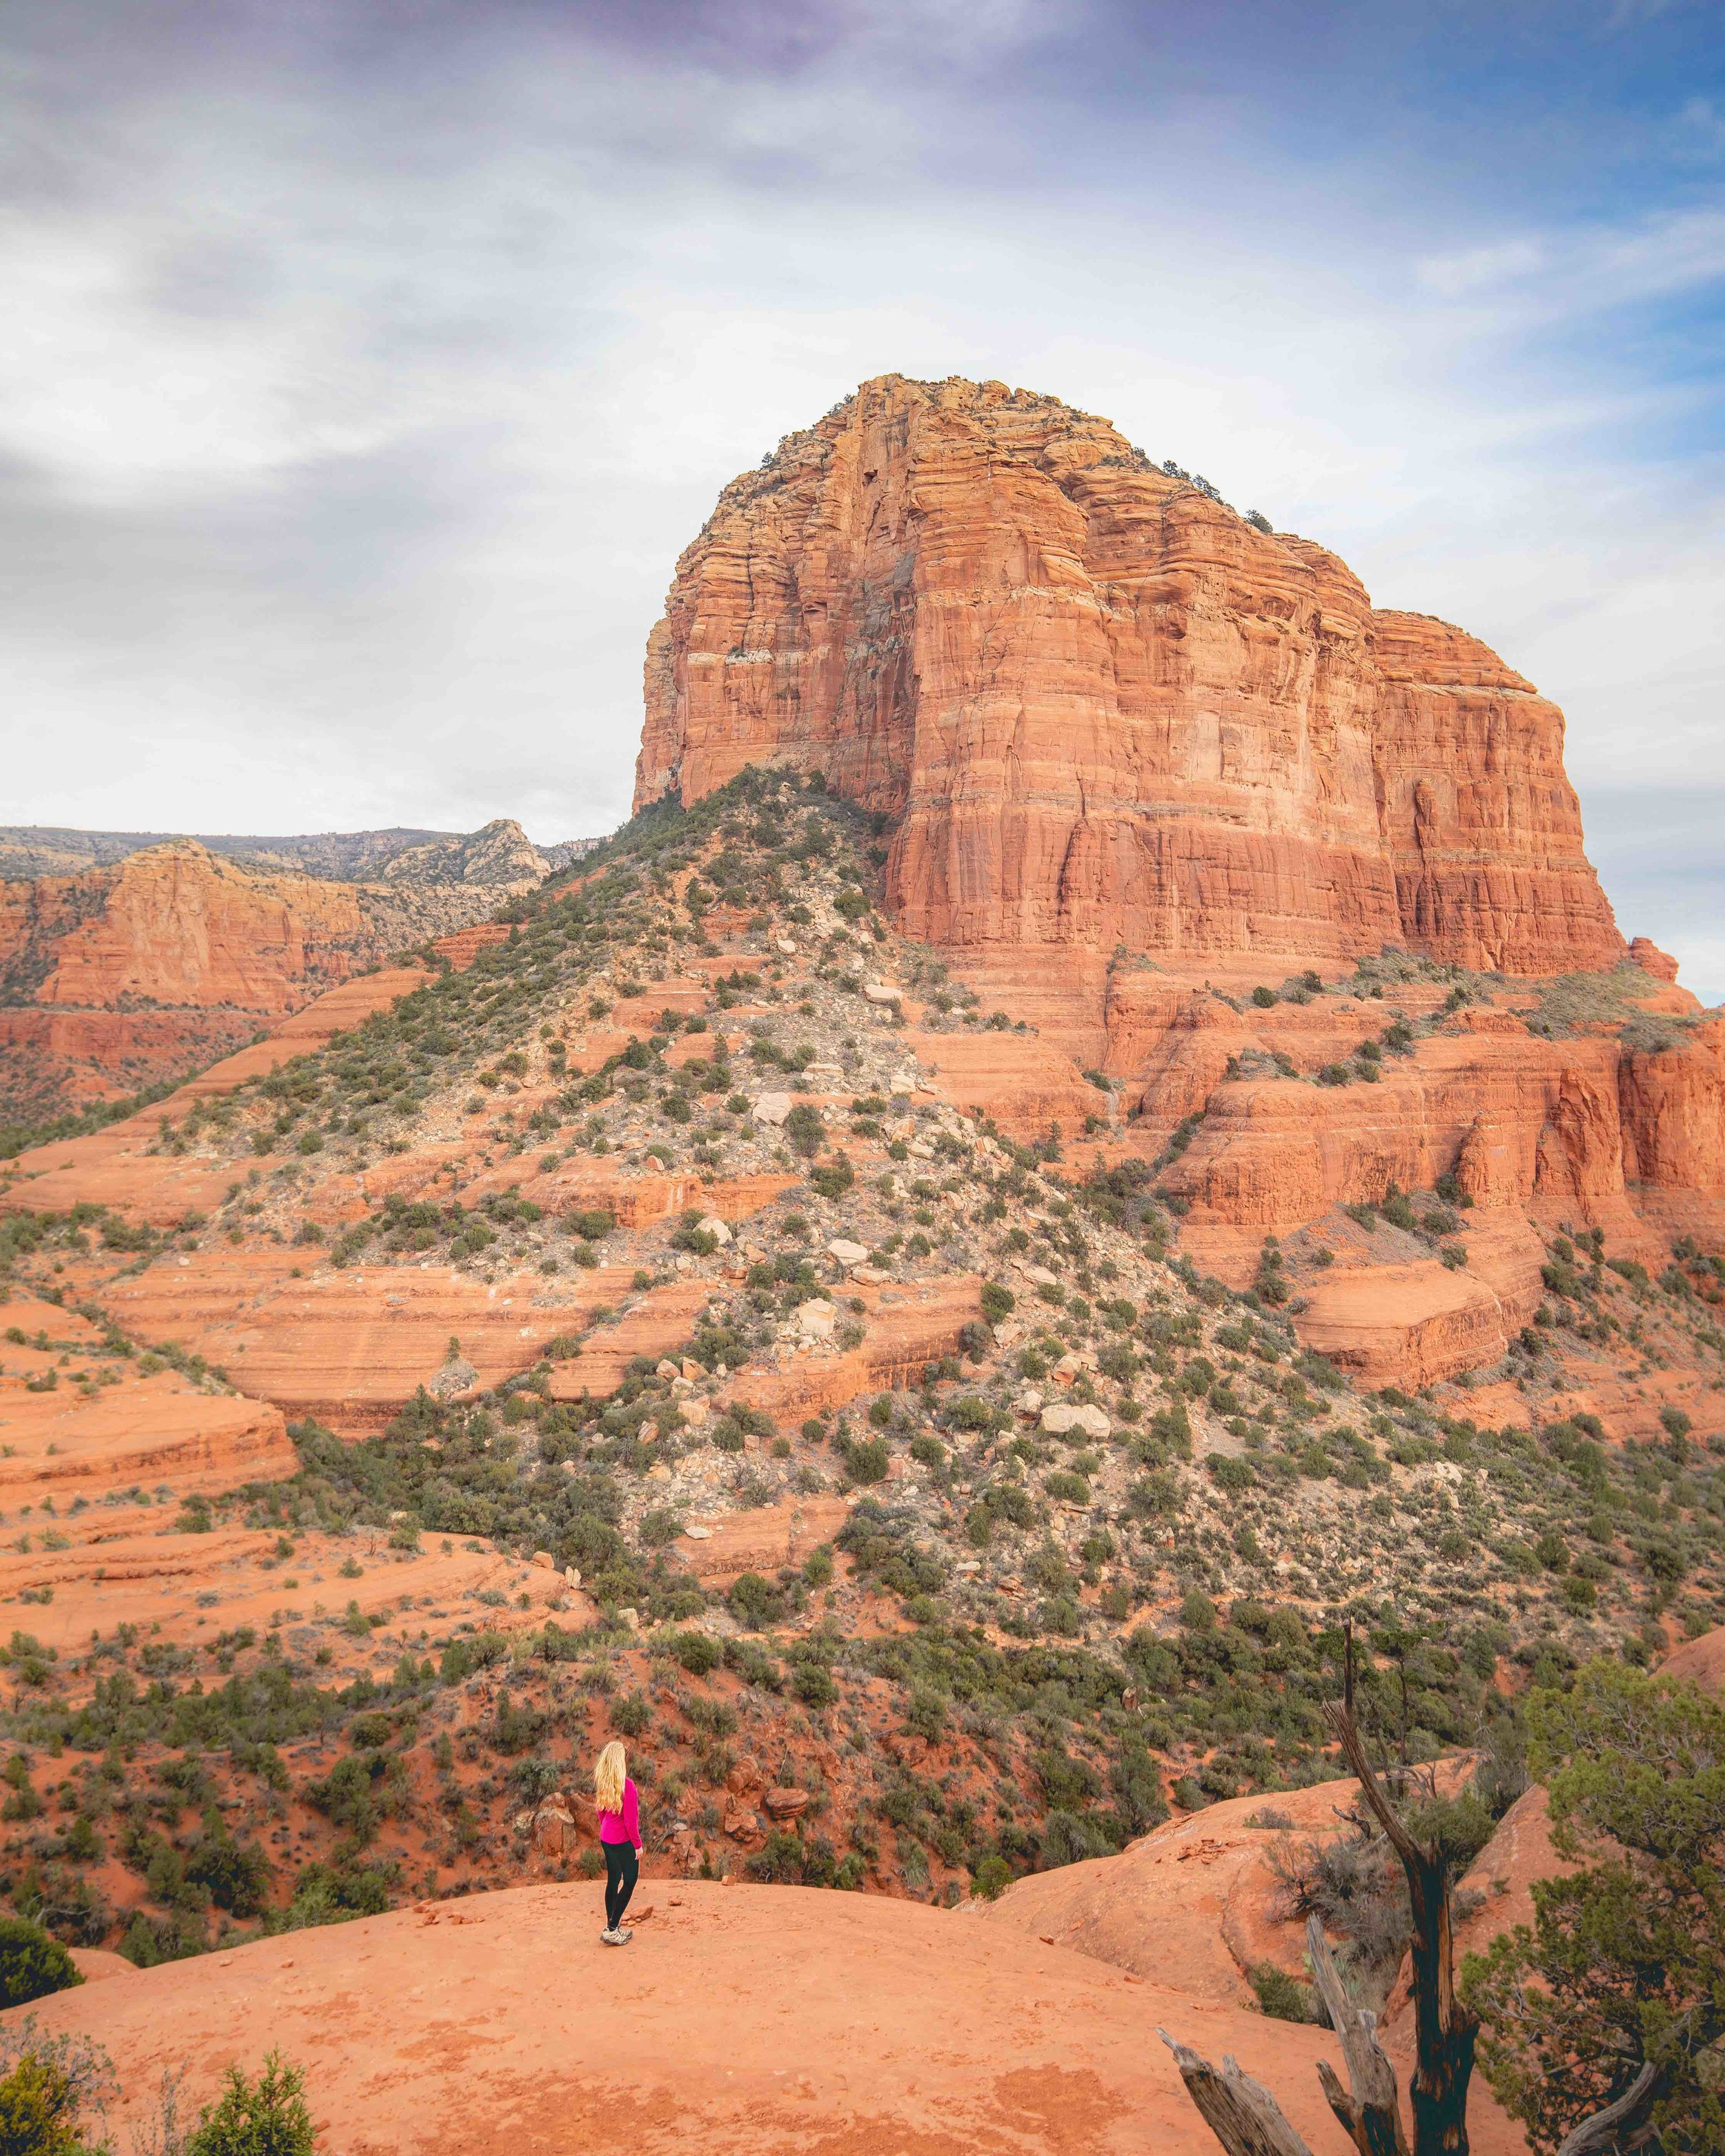 Visiting USA on a budget - Sedona